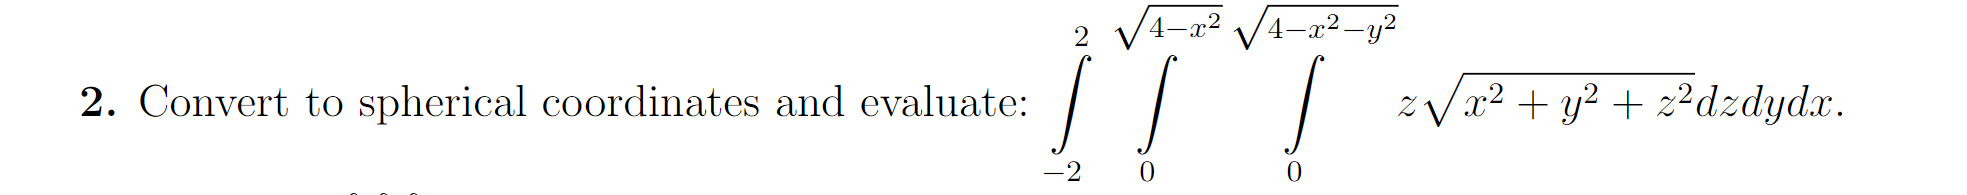 4-2 4-2-y2 zVa2y dzdydx 2. Convert to spherical coordinates and evaluate: -2 0